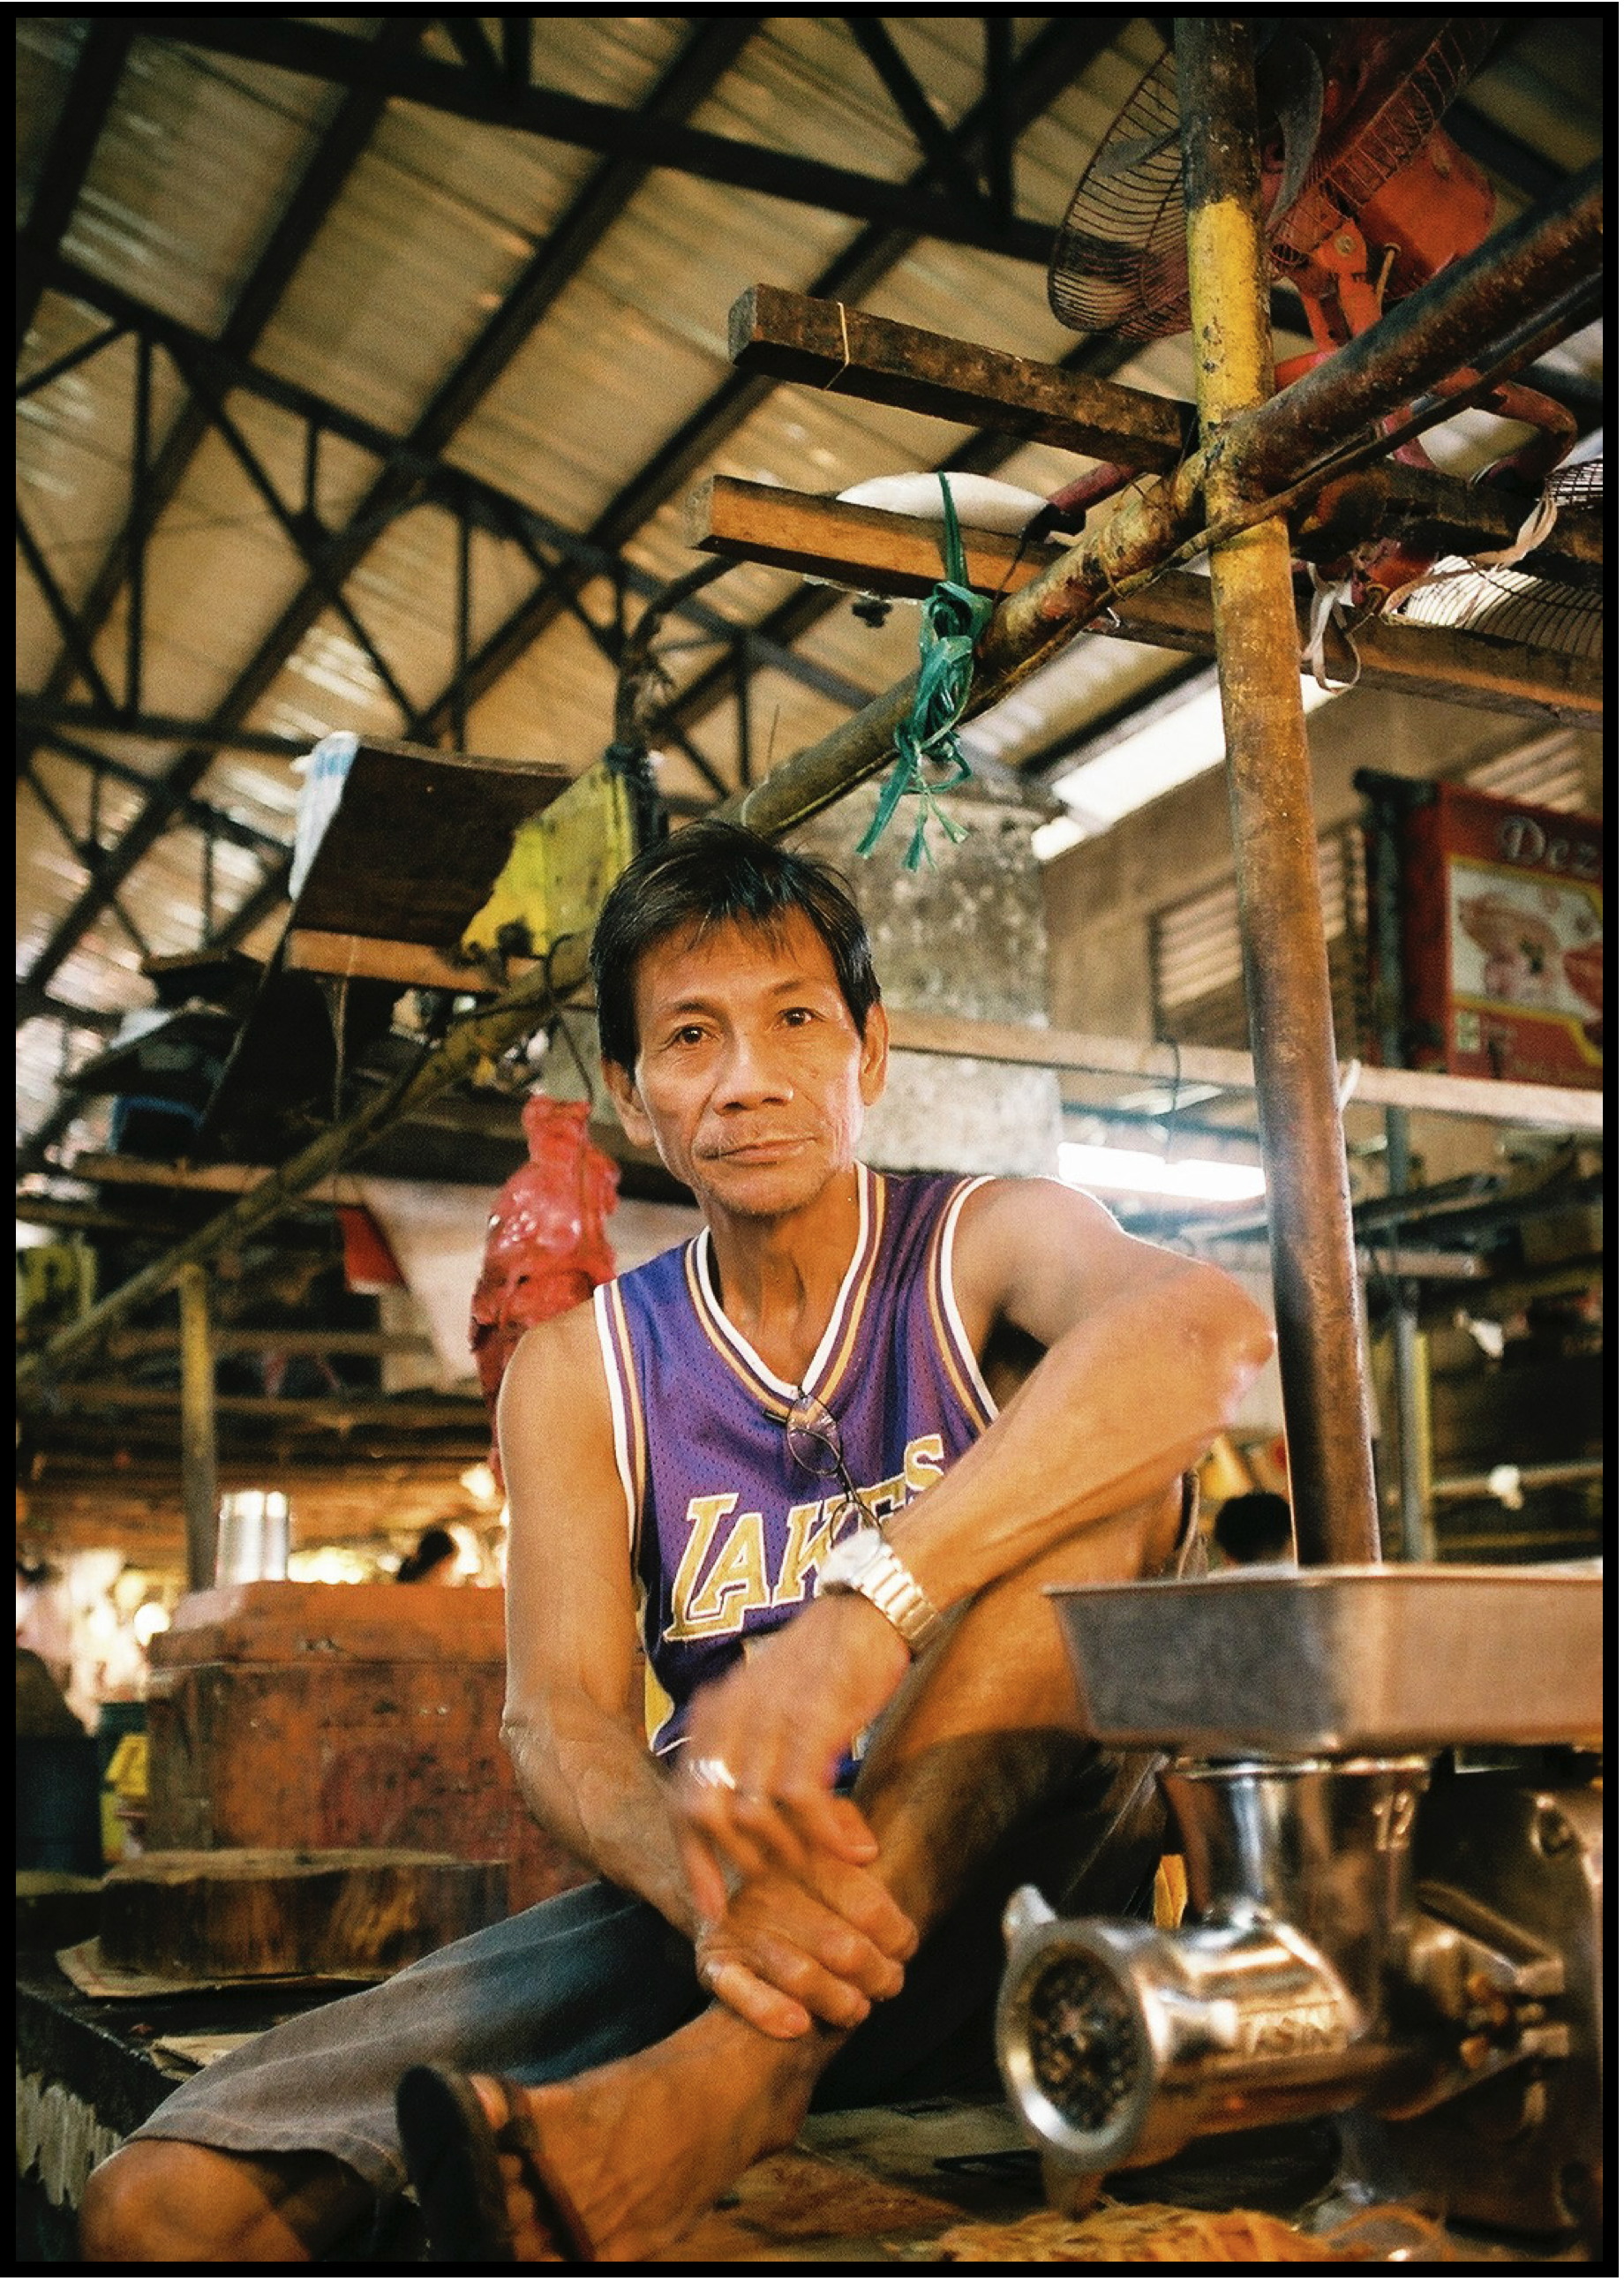 CoxCo_daily_life_Philippines_02 2019-08-12 0.36.41.png